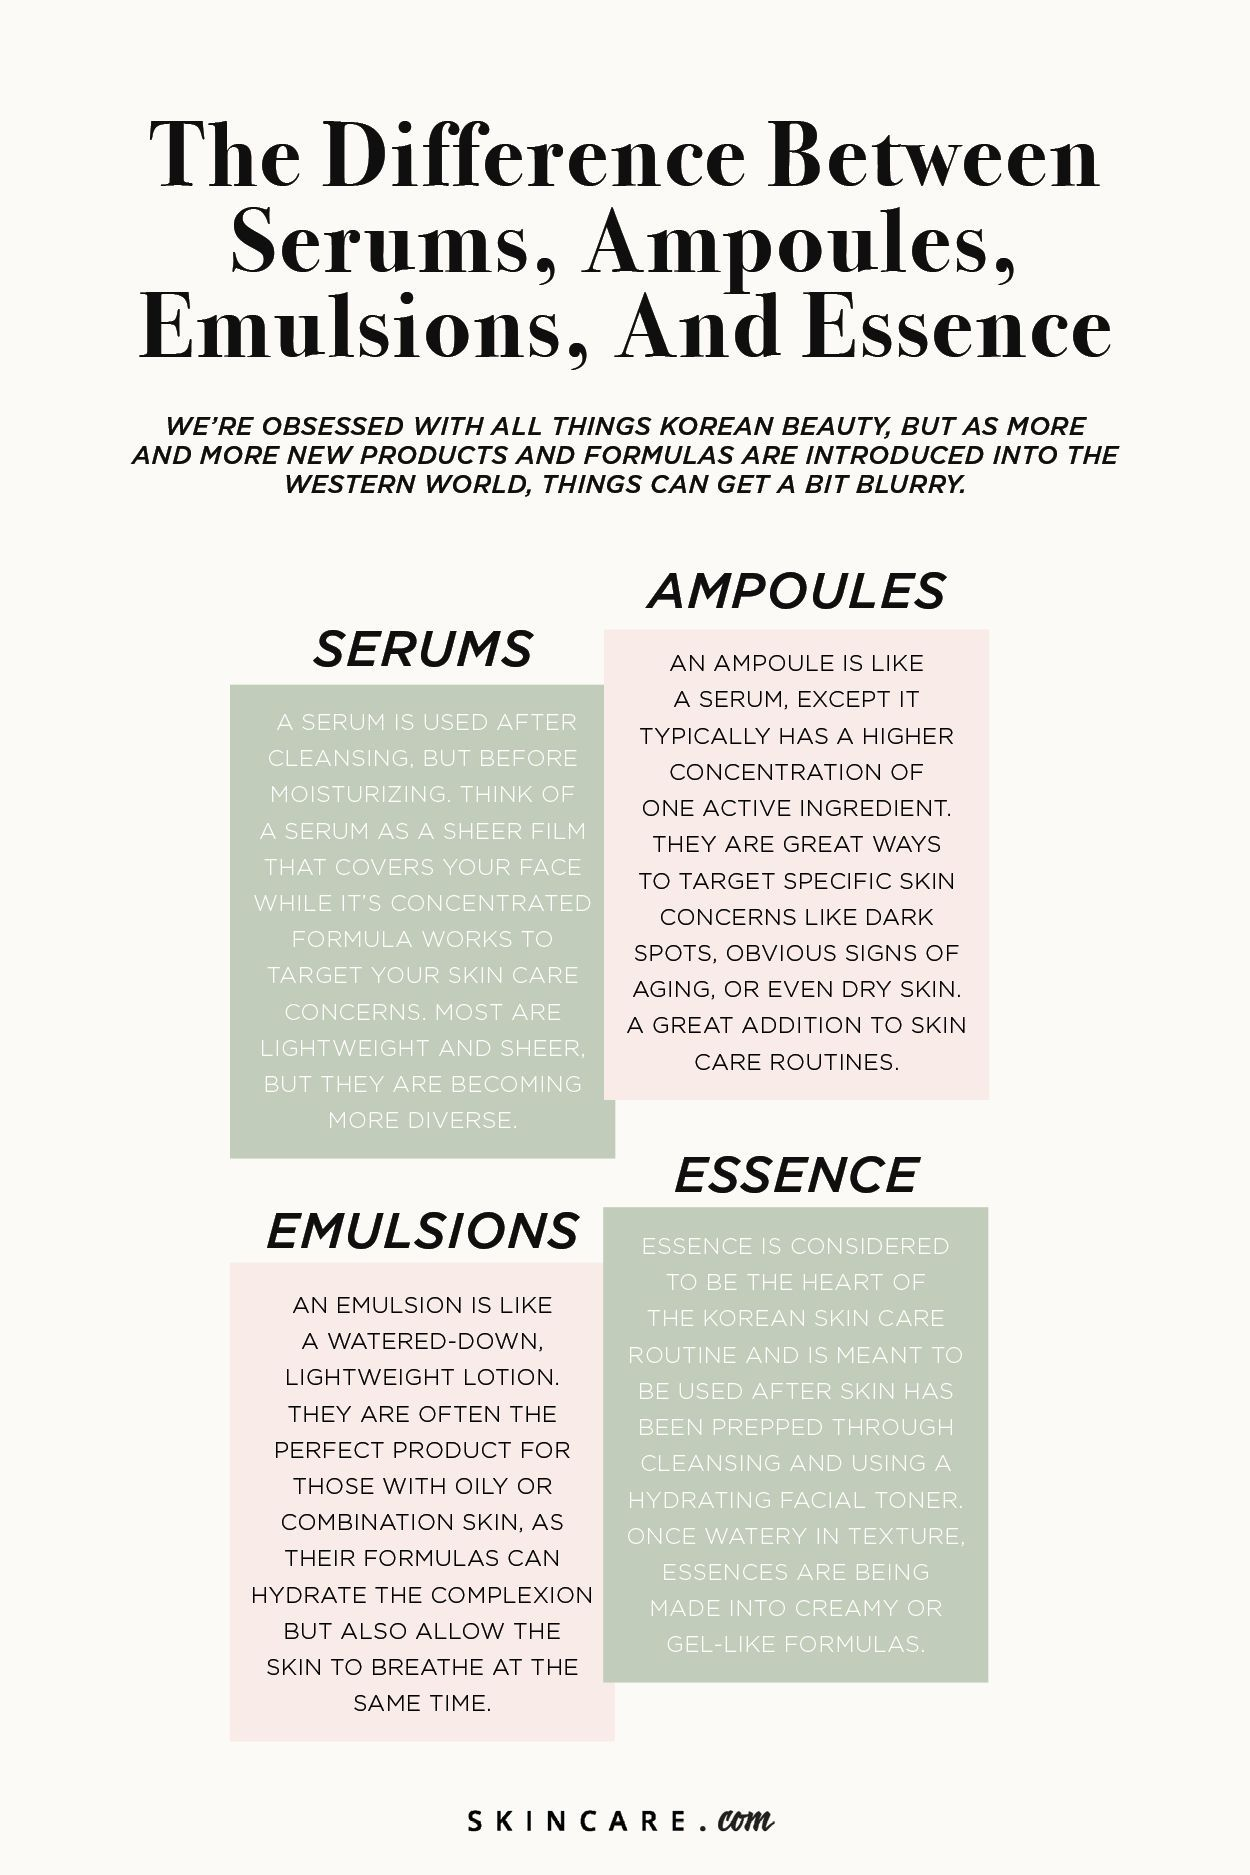 Difference Between Serums, Ampoules, Emulsions and Essences | Skincare.com #beautyproducts